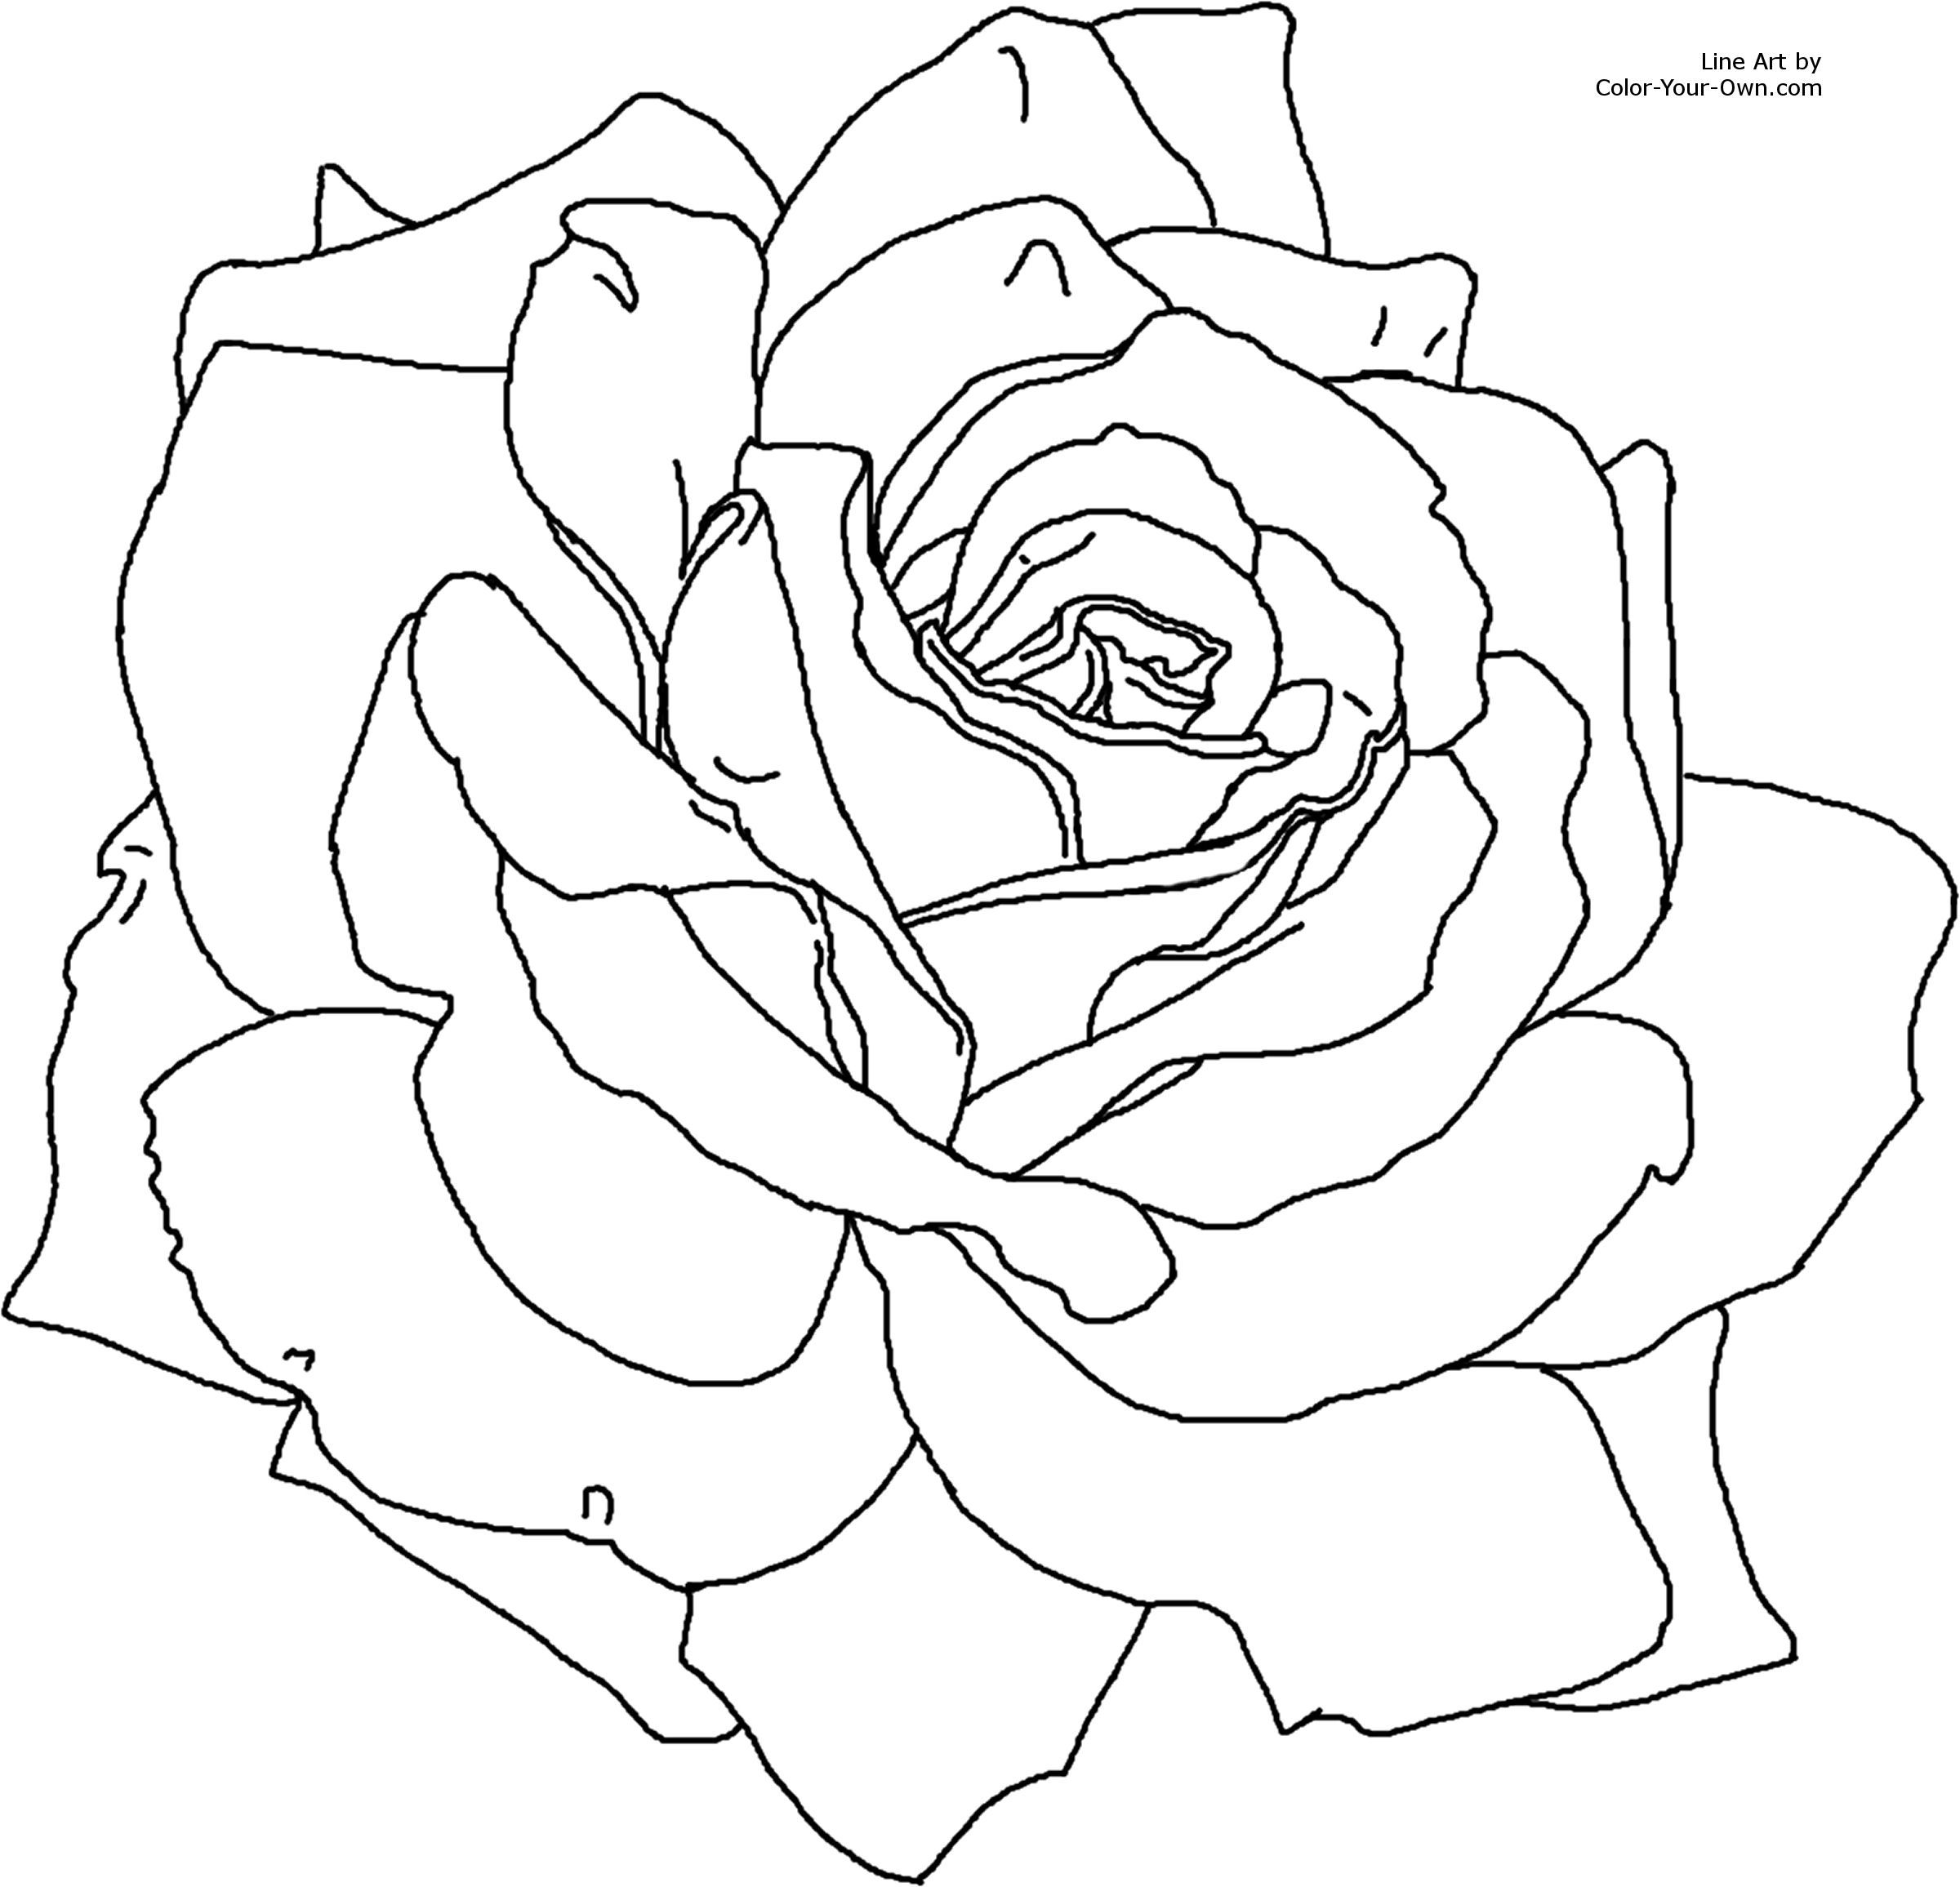 Colouring pages with colour - Flower Page Printable Coloring Sheets For The 8 5 X 11 Printable Size Click Here